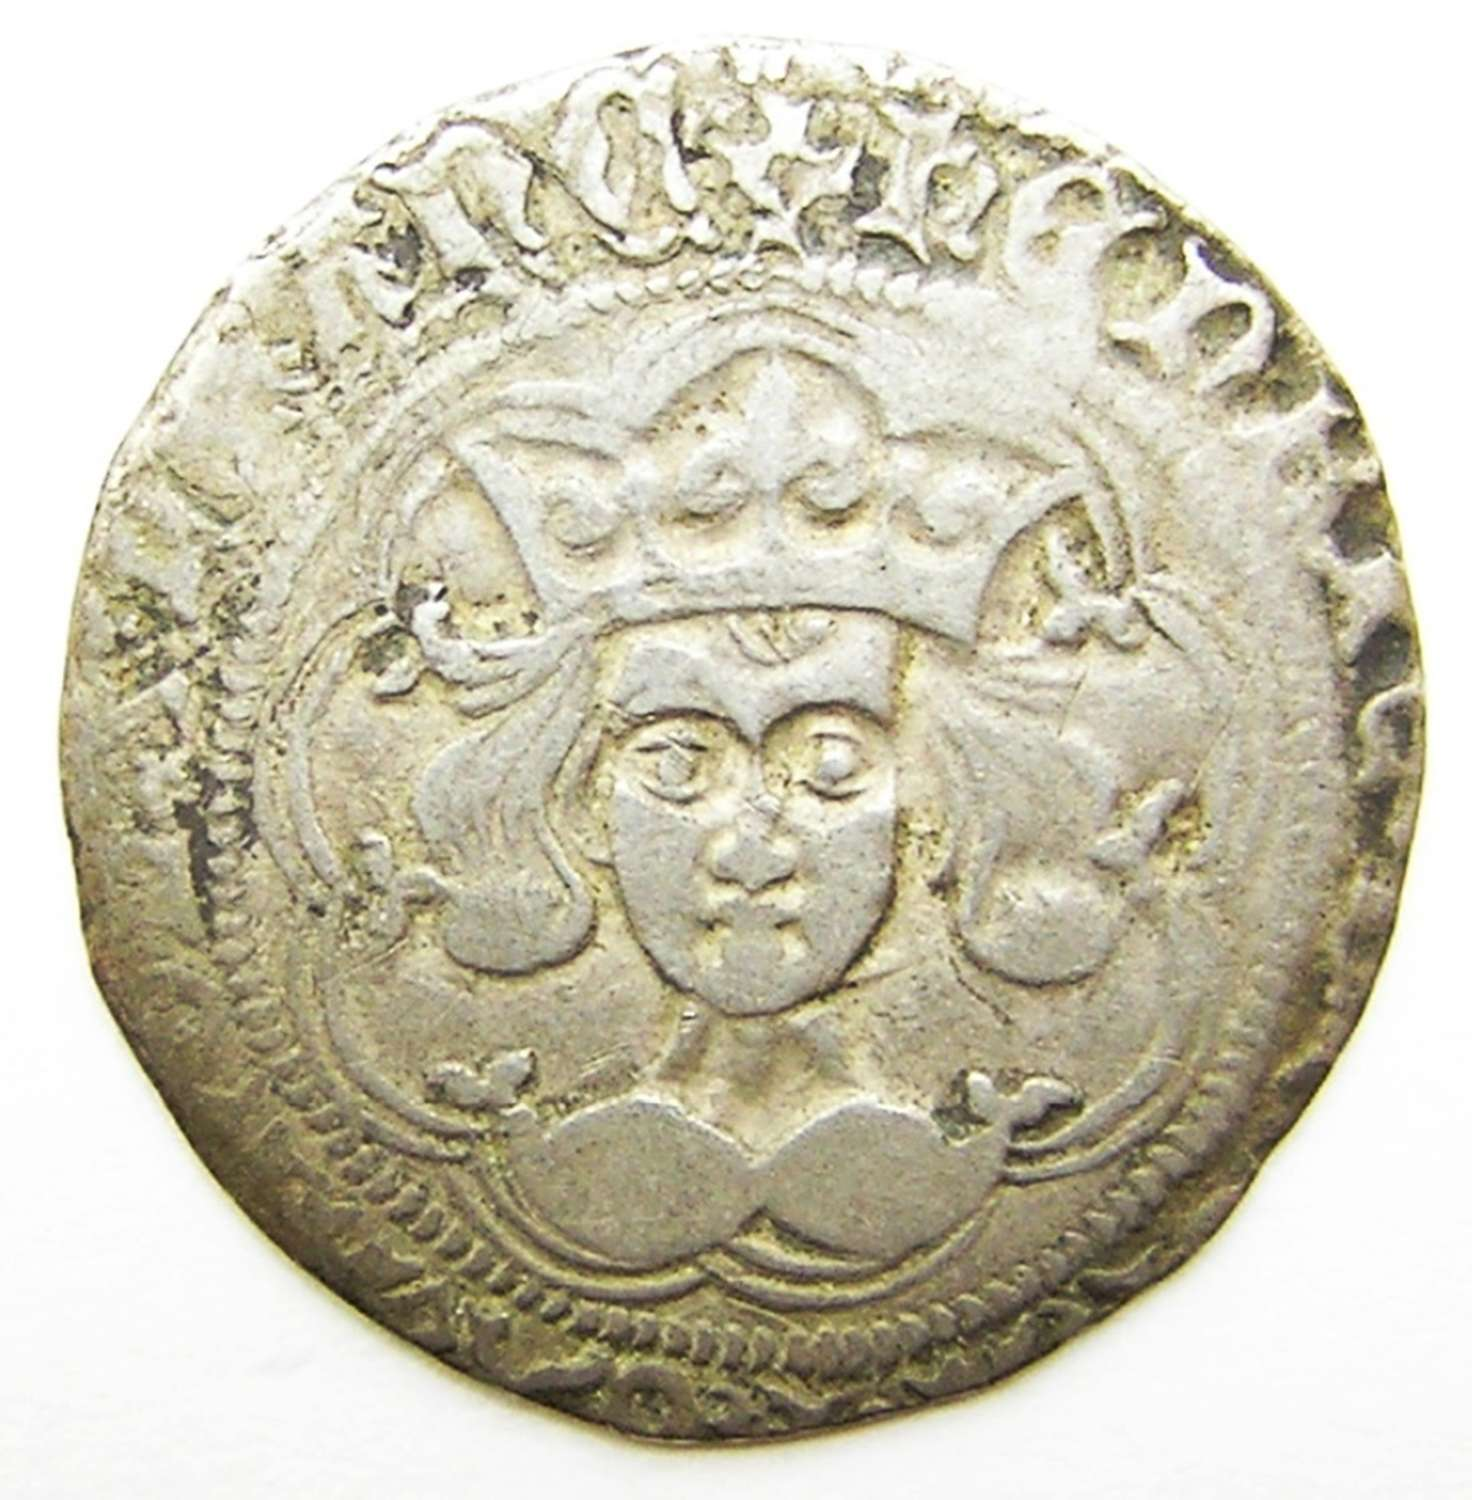 Medieval silver groat of king Henry VI Calais Joan of Arc period